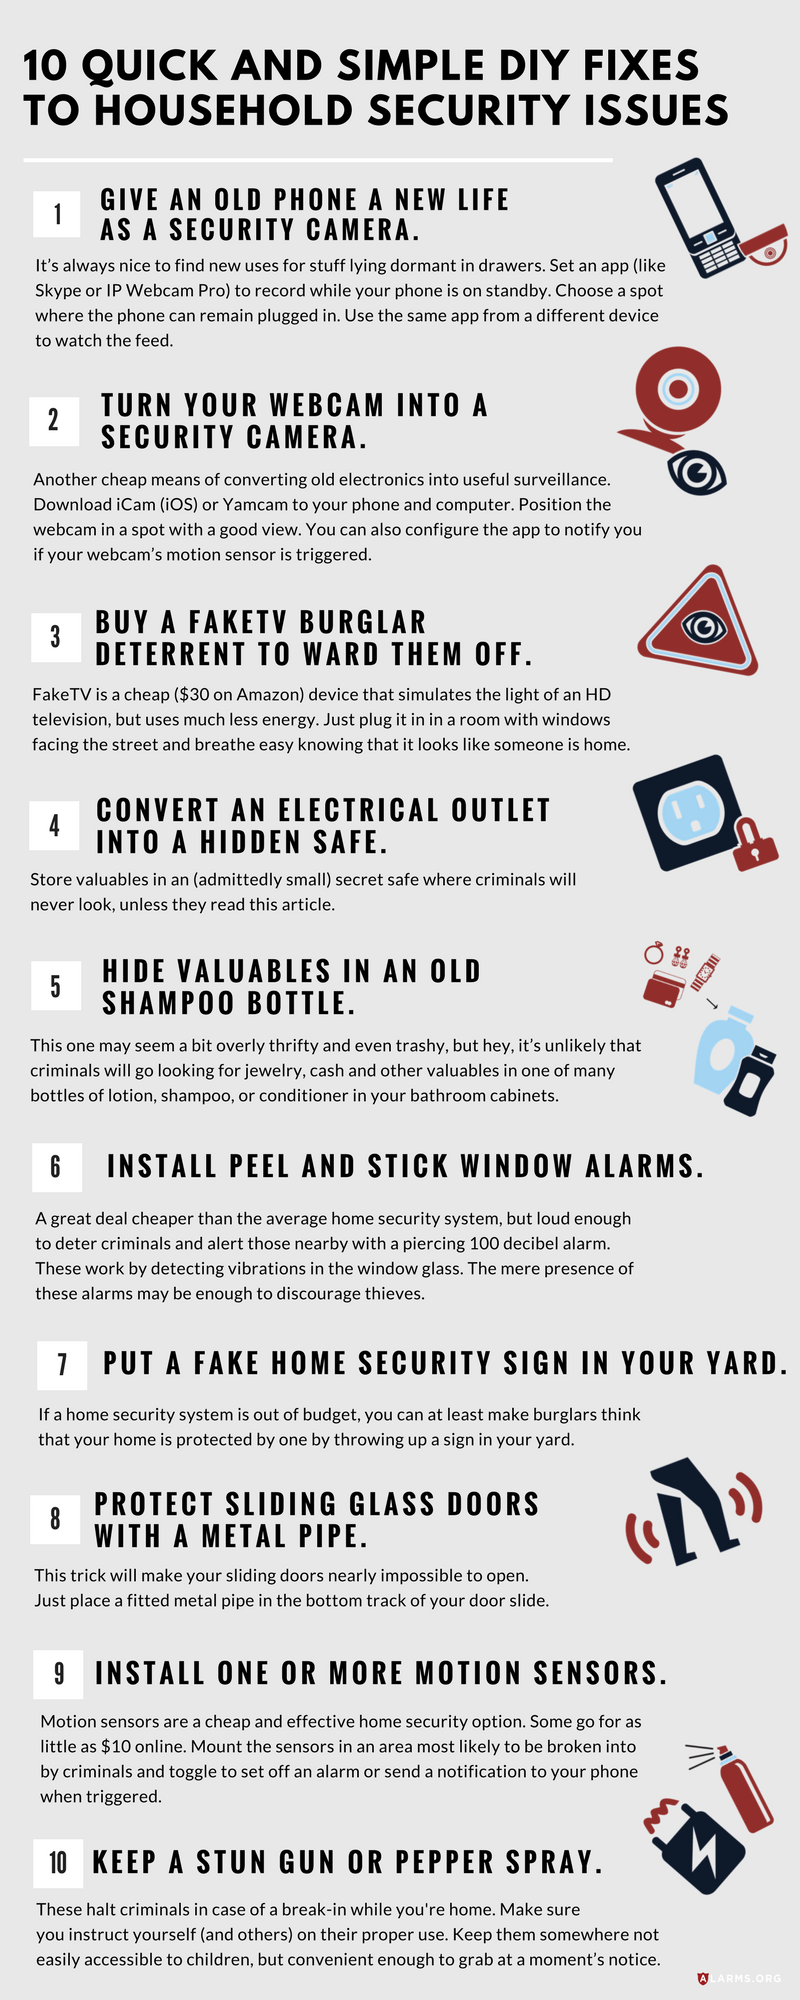 Infographic: 10 Quick and Simple DIY Fixes